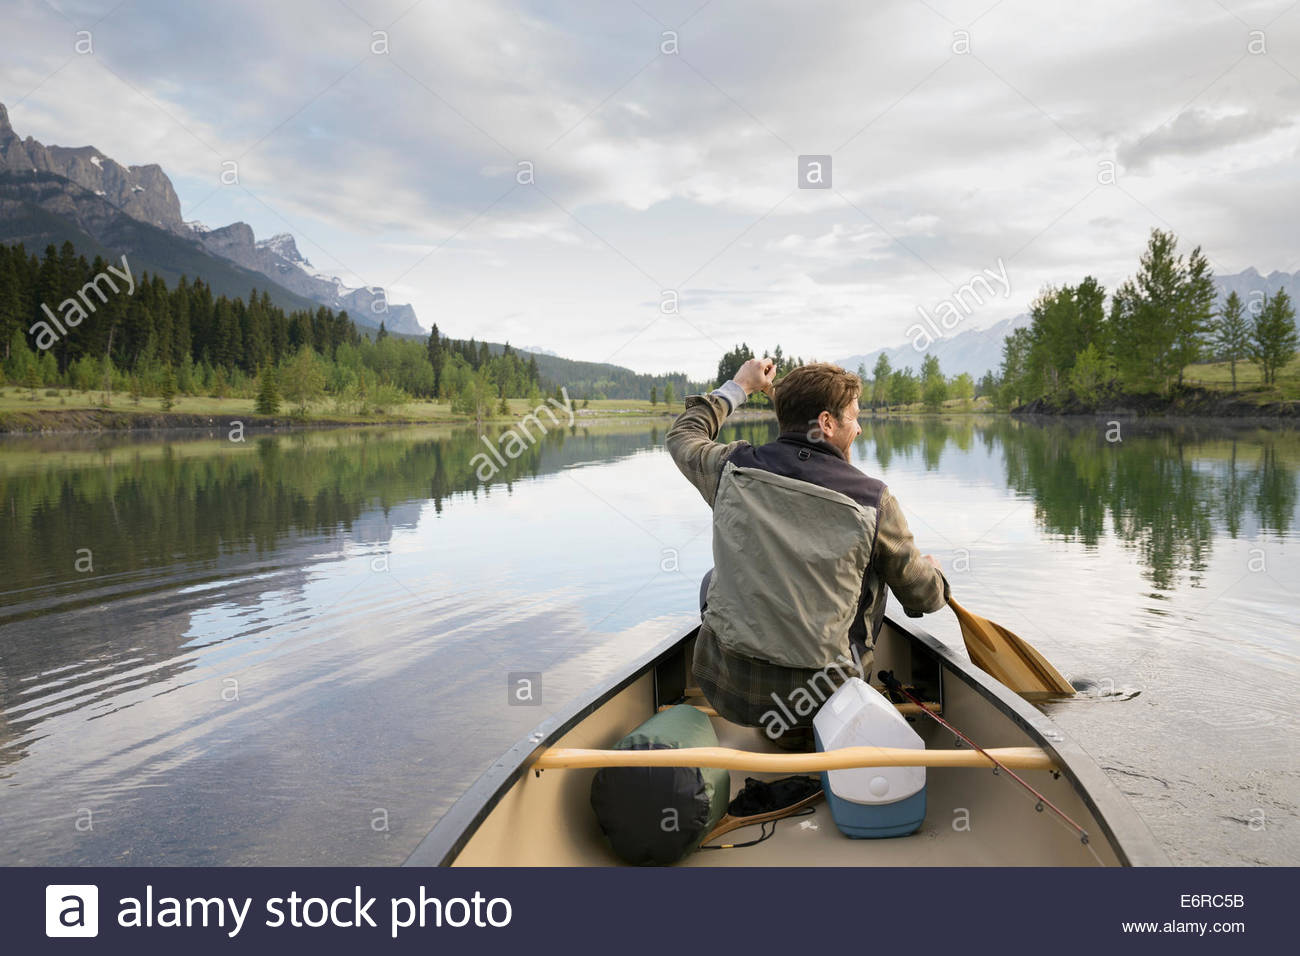 Man rowing canoe in still lake - Stock Image